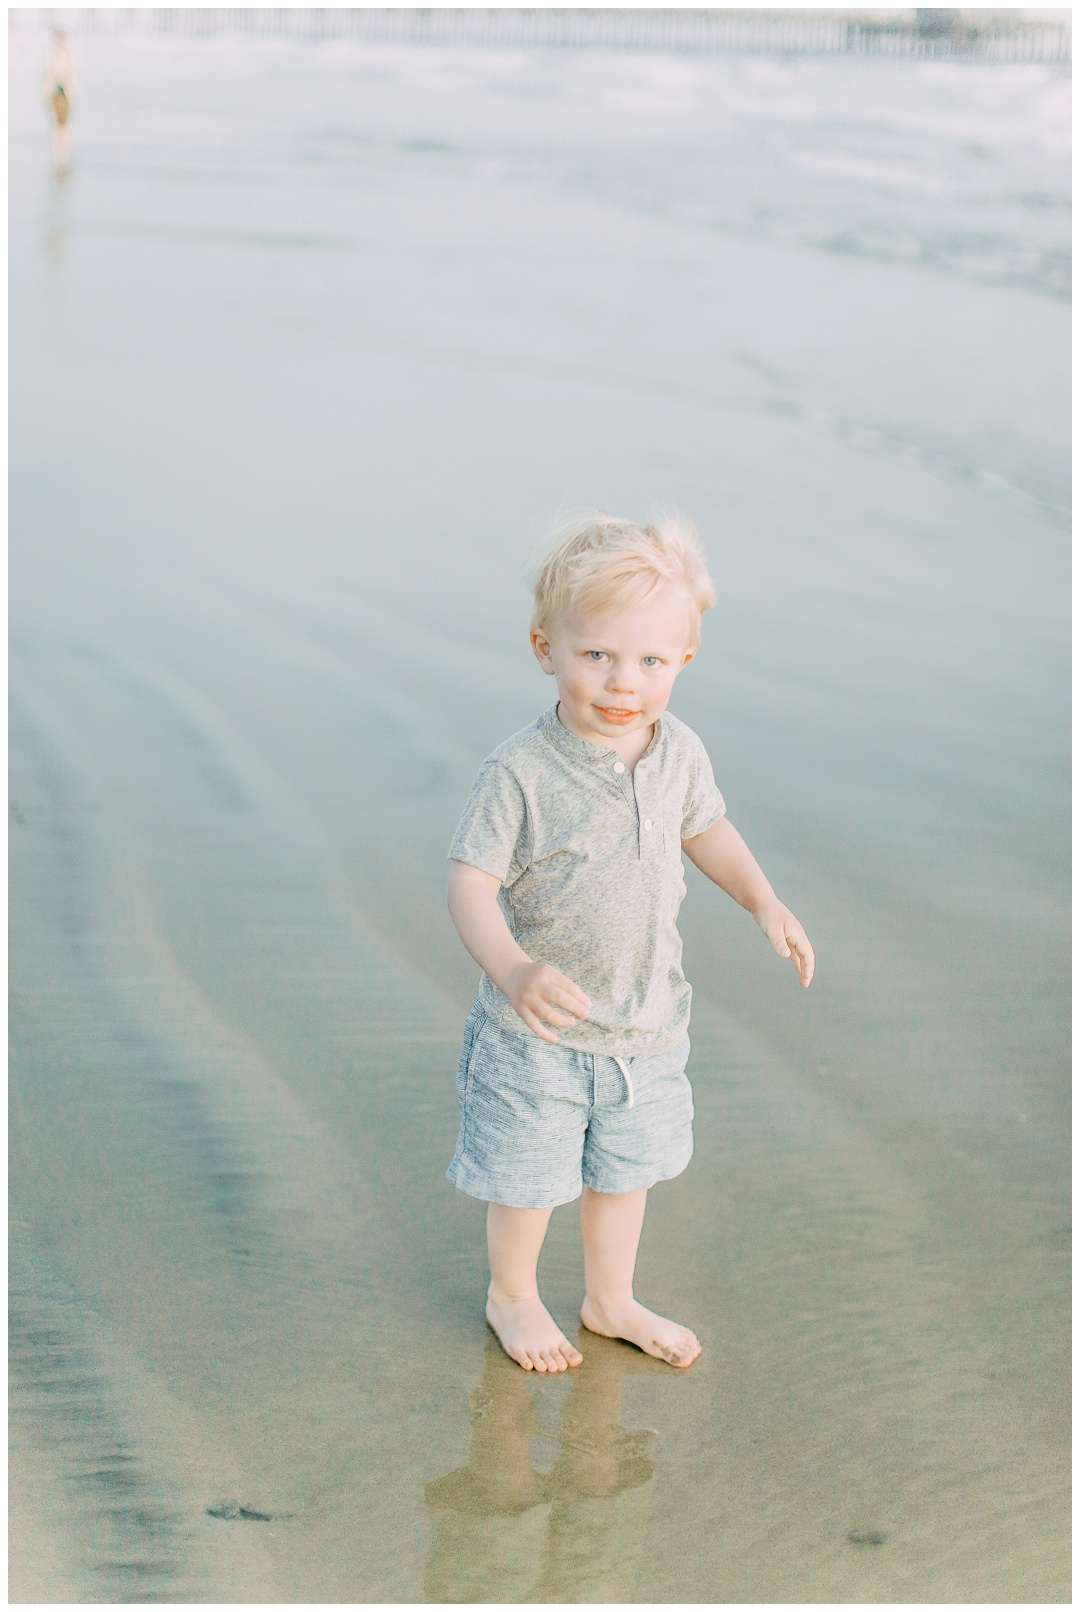 The_Bing_Famiy_Newport_Beach_Family_Photographer_Orange_County_Family_Photography_Cori_Kleckner_Photography_Orange_County_Family_Photographer_Family_Photos_Session__1351.jpg